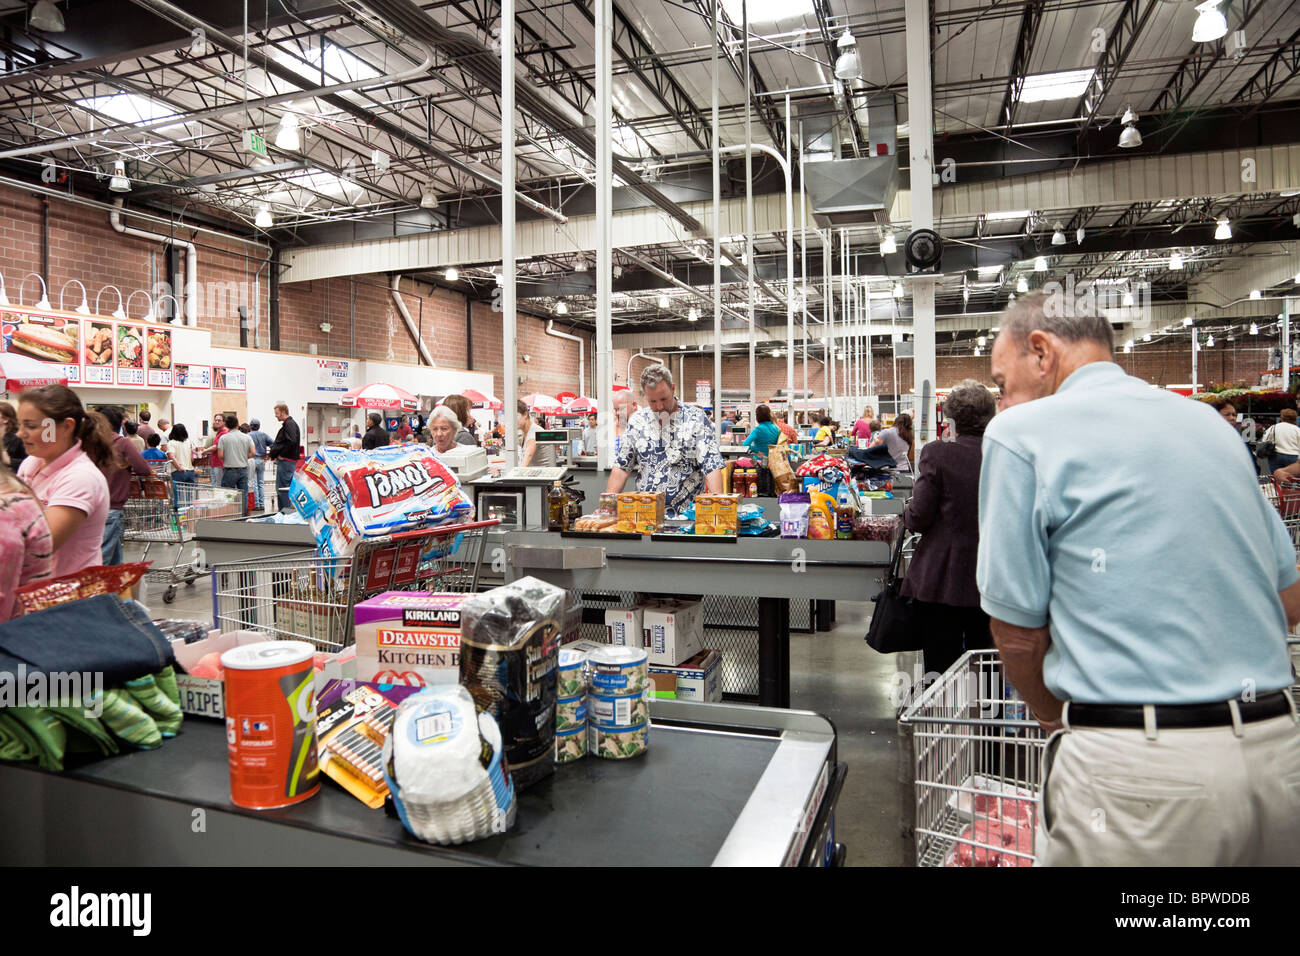 people pass through rows of checkout counters loaded with consumer purchases at a Costco USA  big box retailer - Stock Image